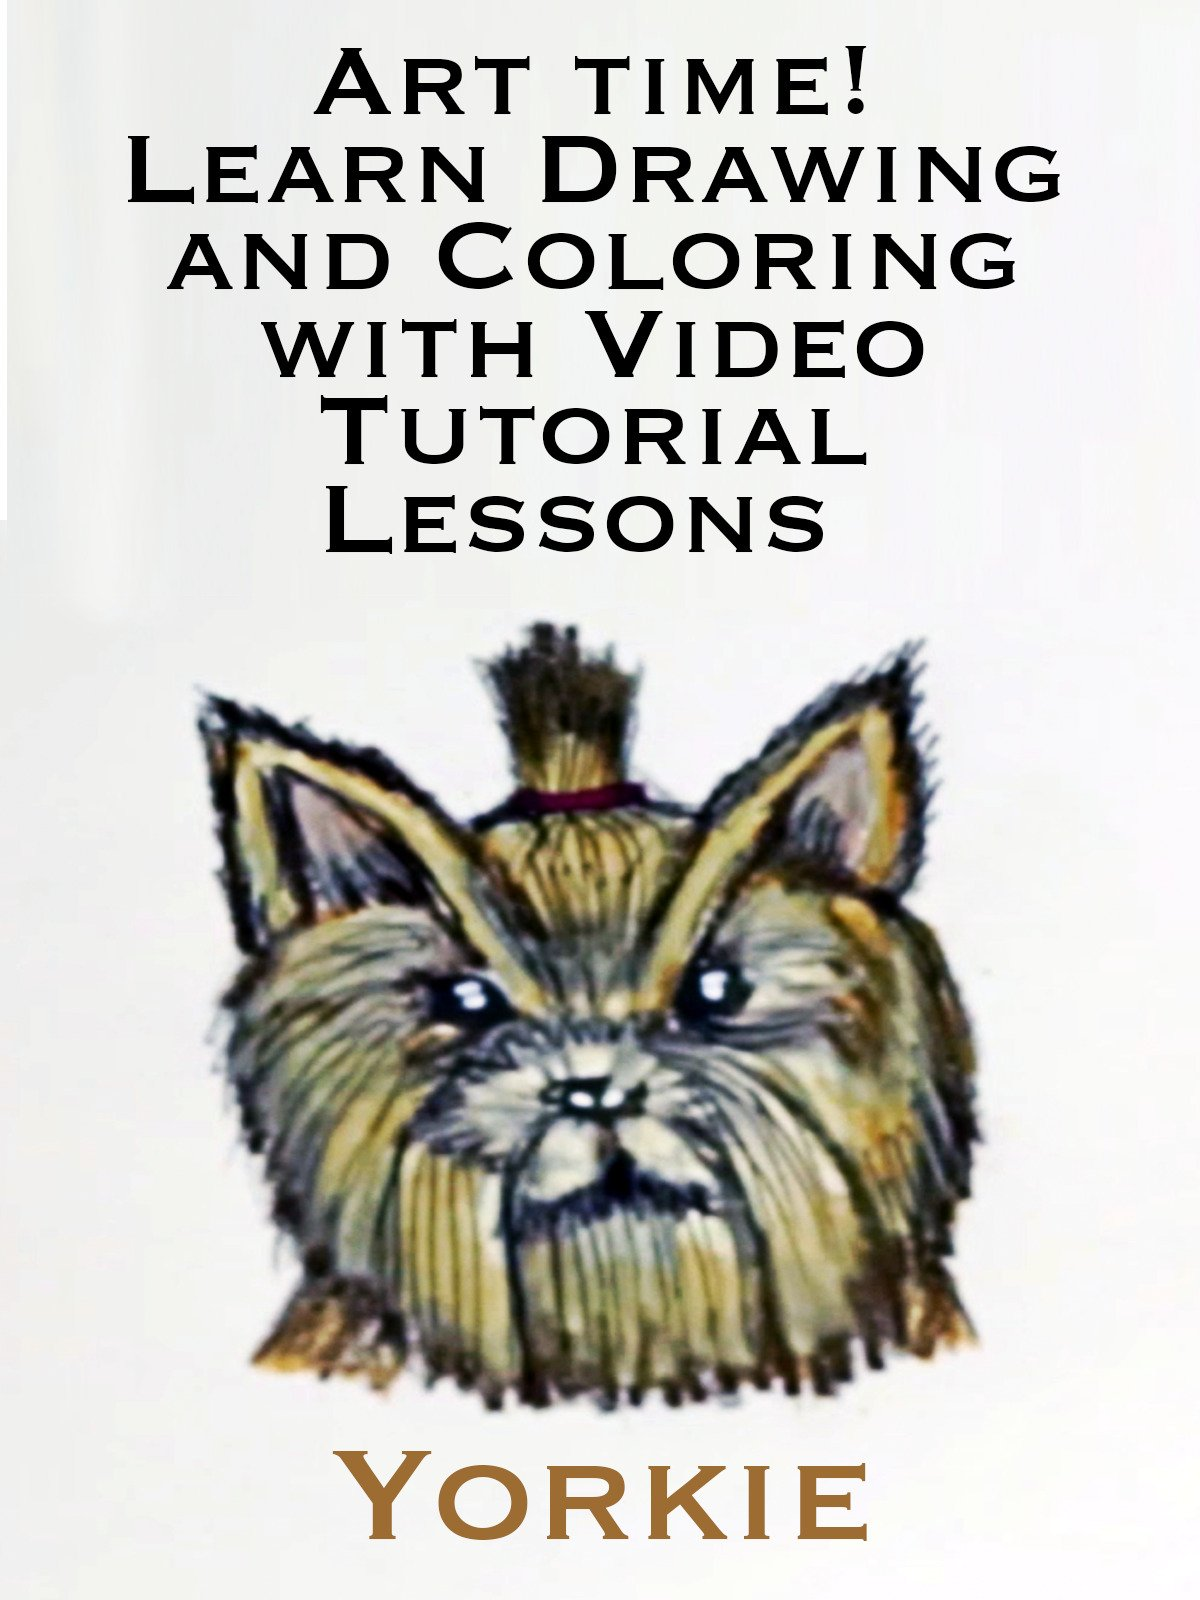 Art time! Learn Drawing and Coloring with Video Tutorial Lessons Yorkie